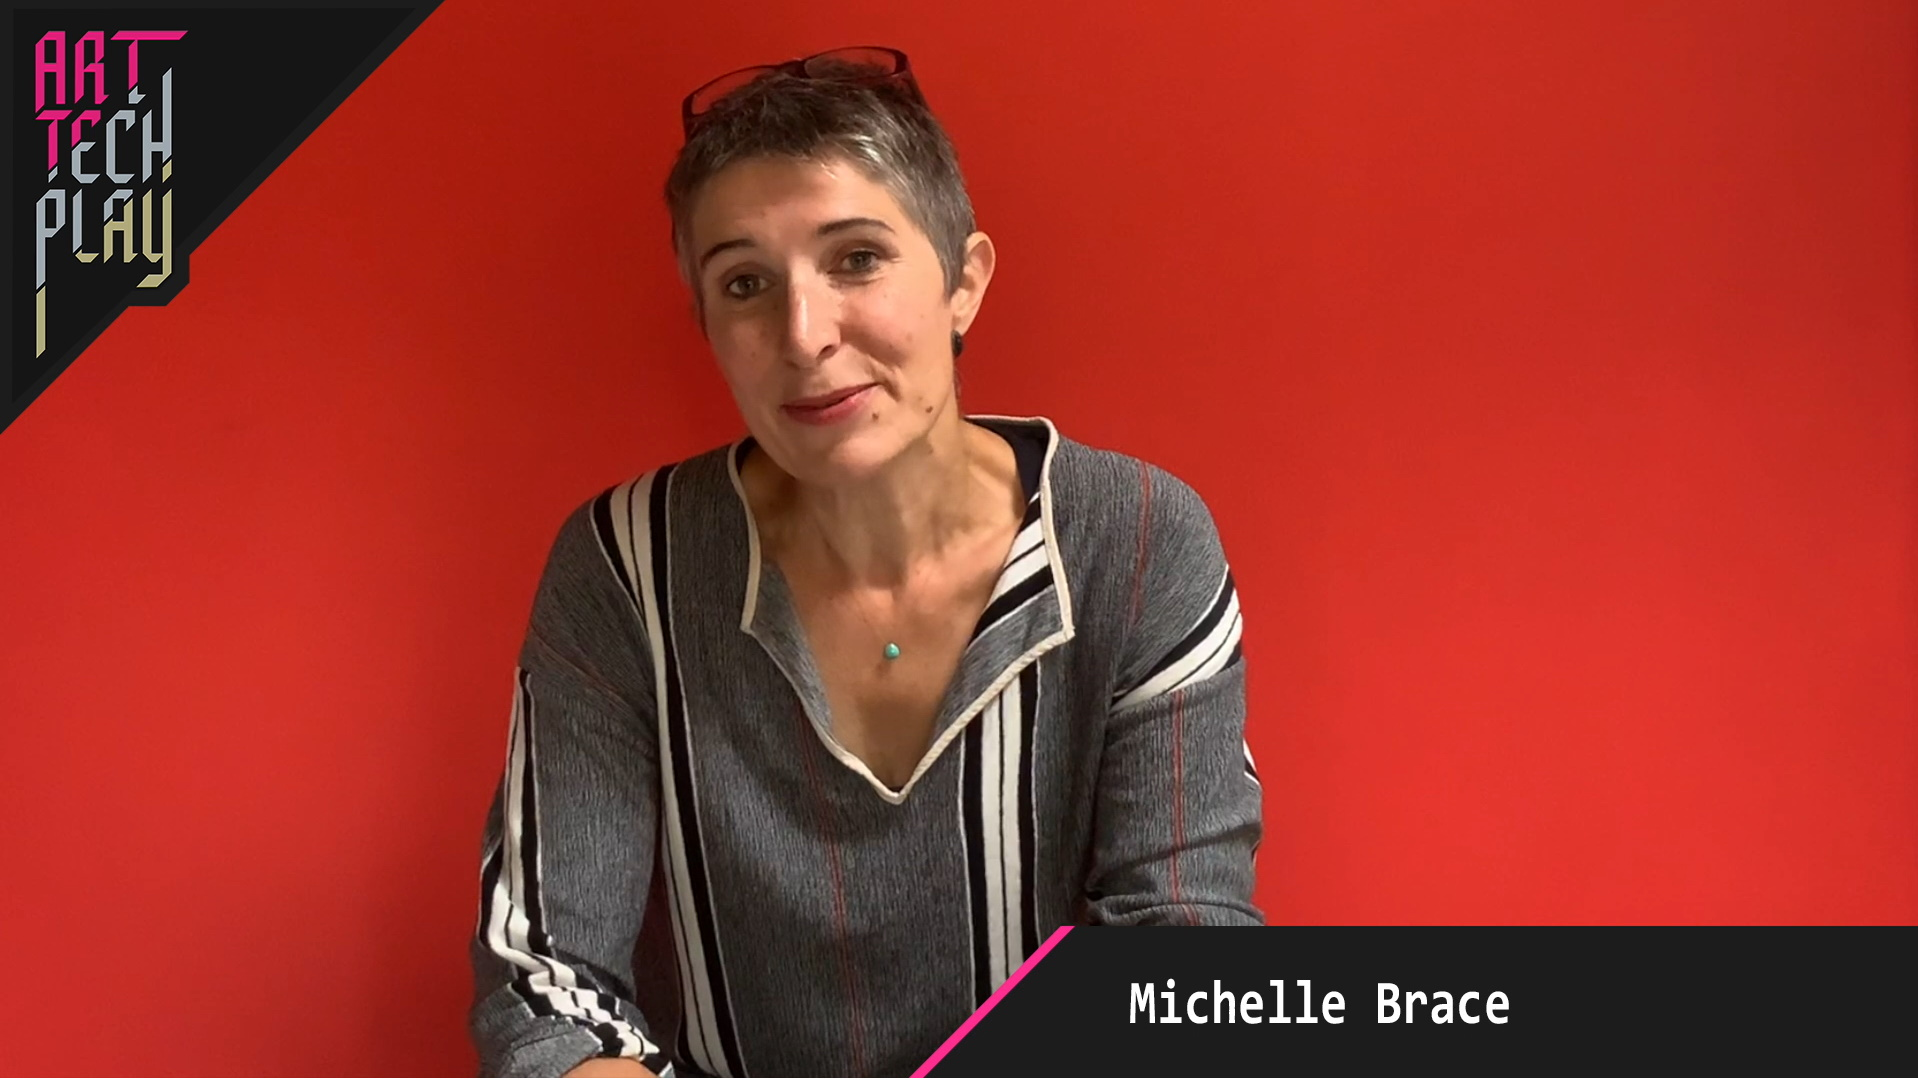 Michelle Brace on visual mixing